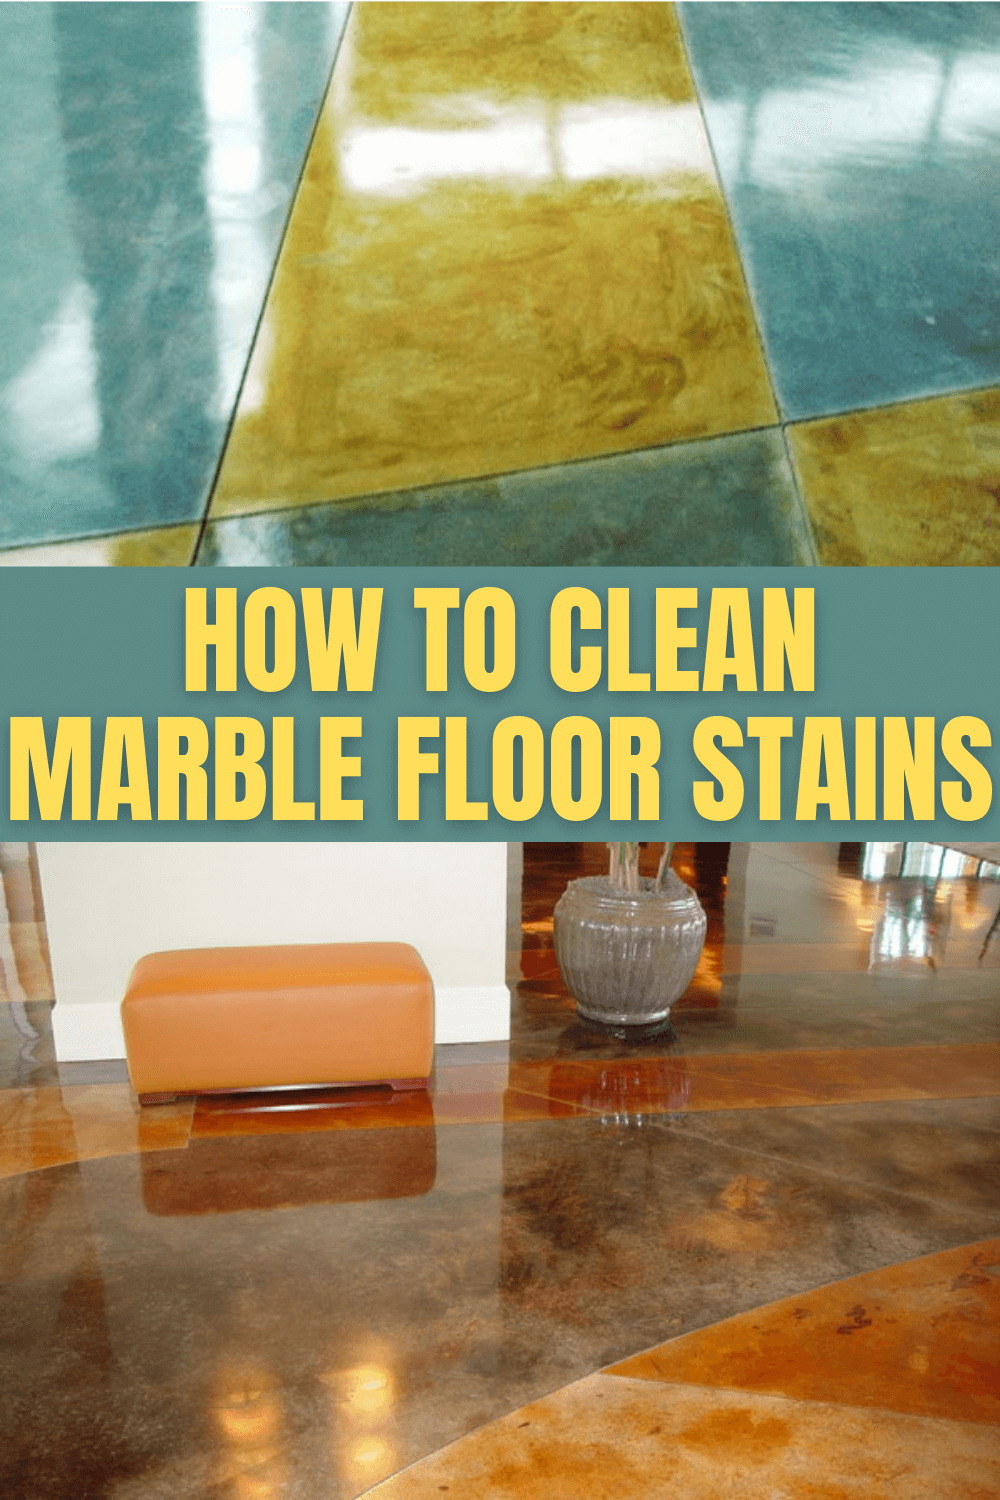 HOW TO CLEAN MARBLE FLOOR STAINS